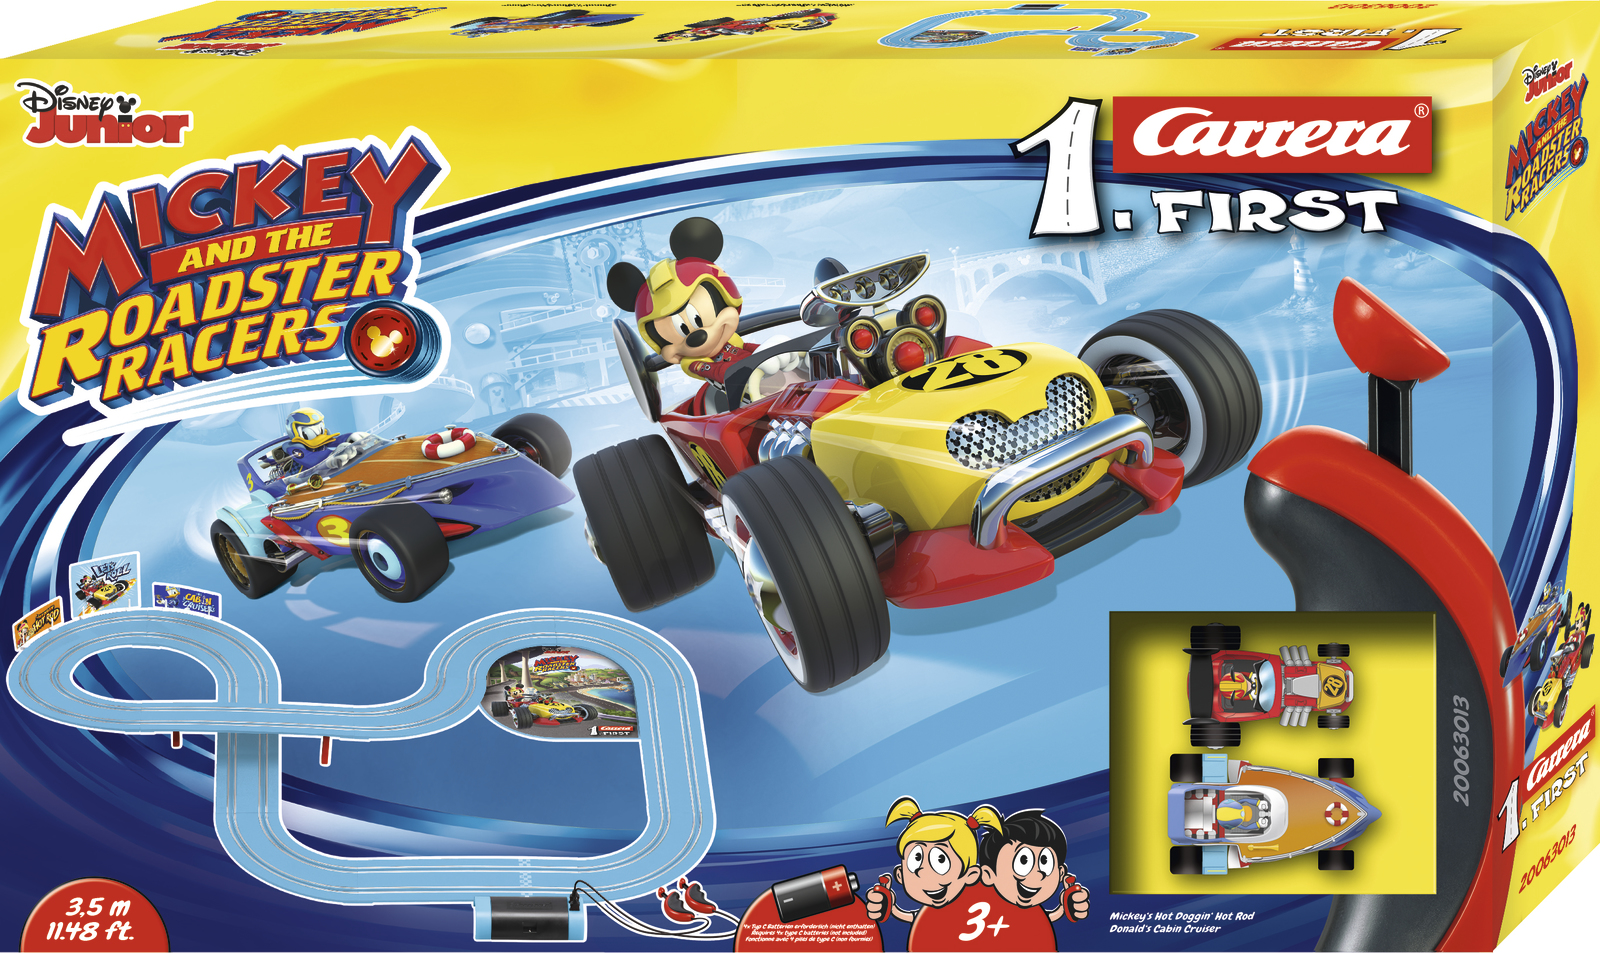 Carrera First: Disney Micky Roadstar Racers - Slot Car Set #2 image